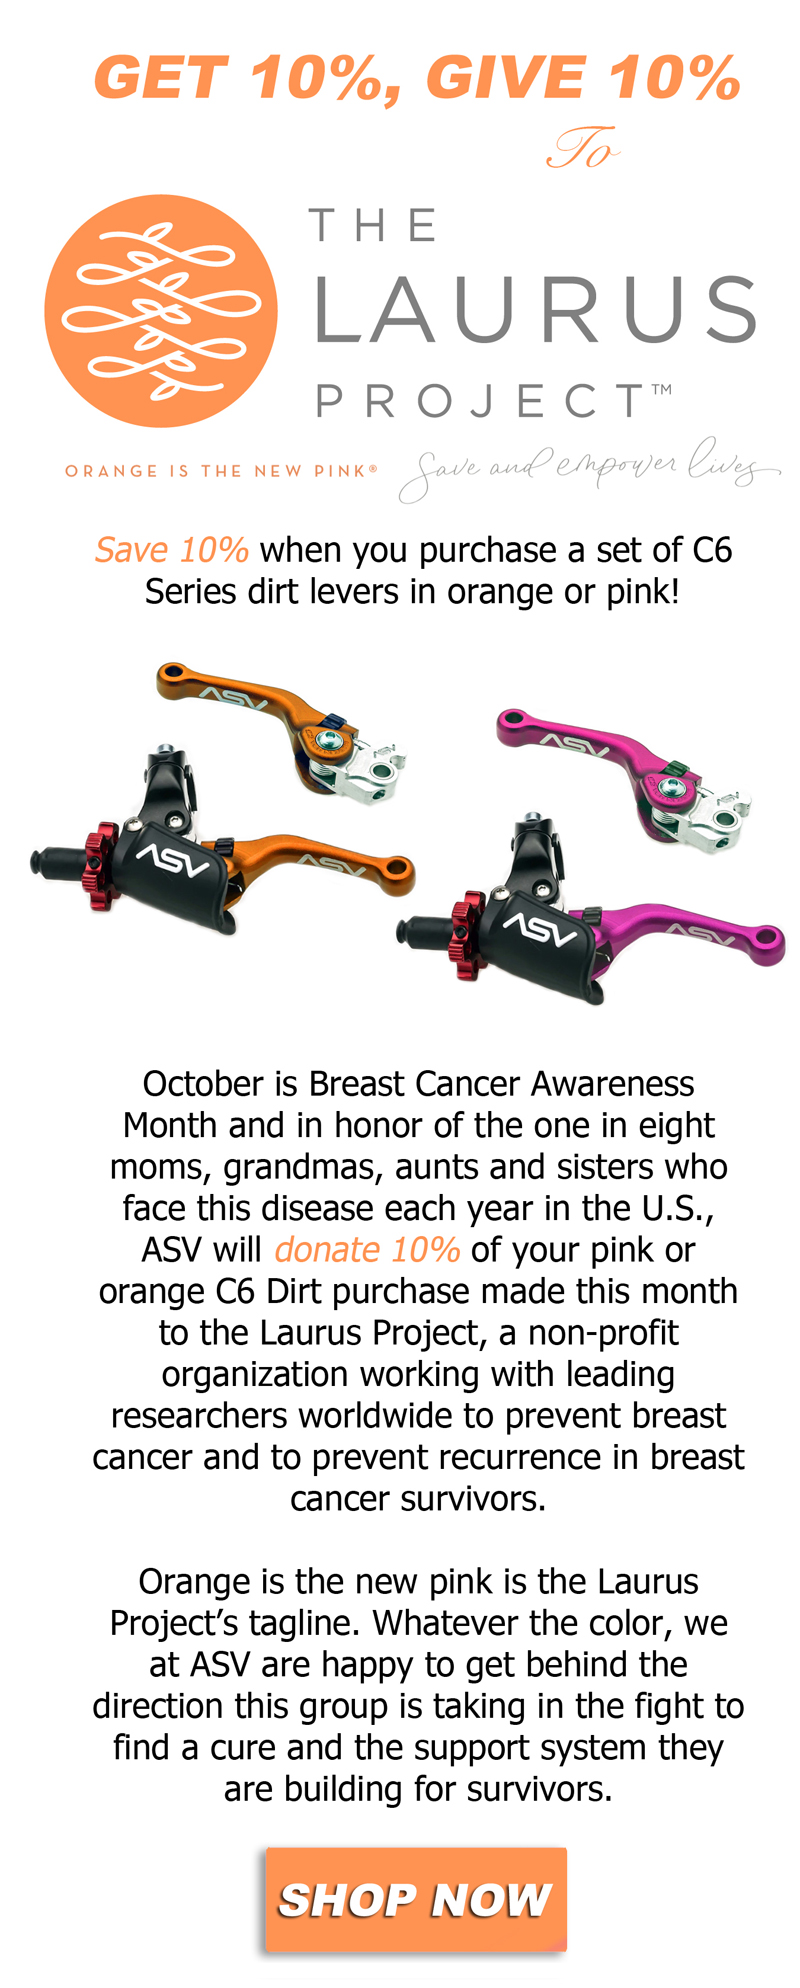 Get 10%, Give 10% to The Laurus Project